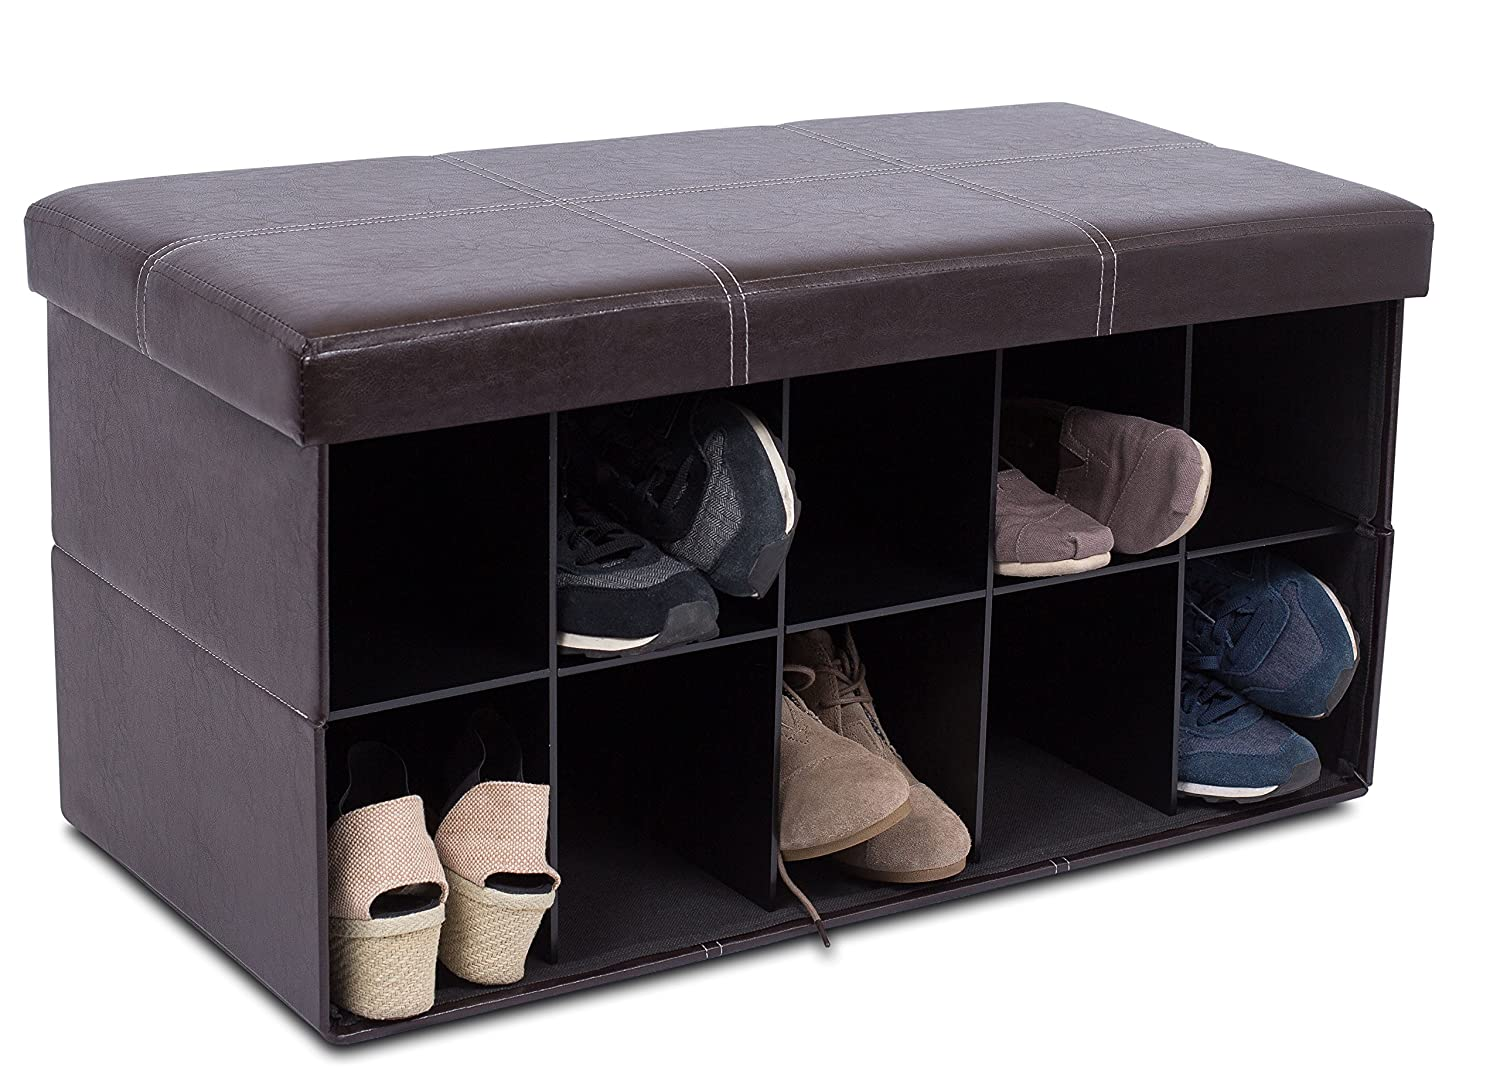 BIRDROCK HOME Storage Ottoman Bench with Shoe Storage – 31.5 x 16 – Strong and Sturdy – Upholstered Cushioned Seat – Shoe Organizer Shoe Rack Foot Stool – Brown